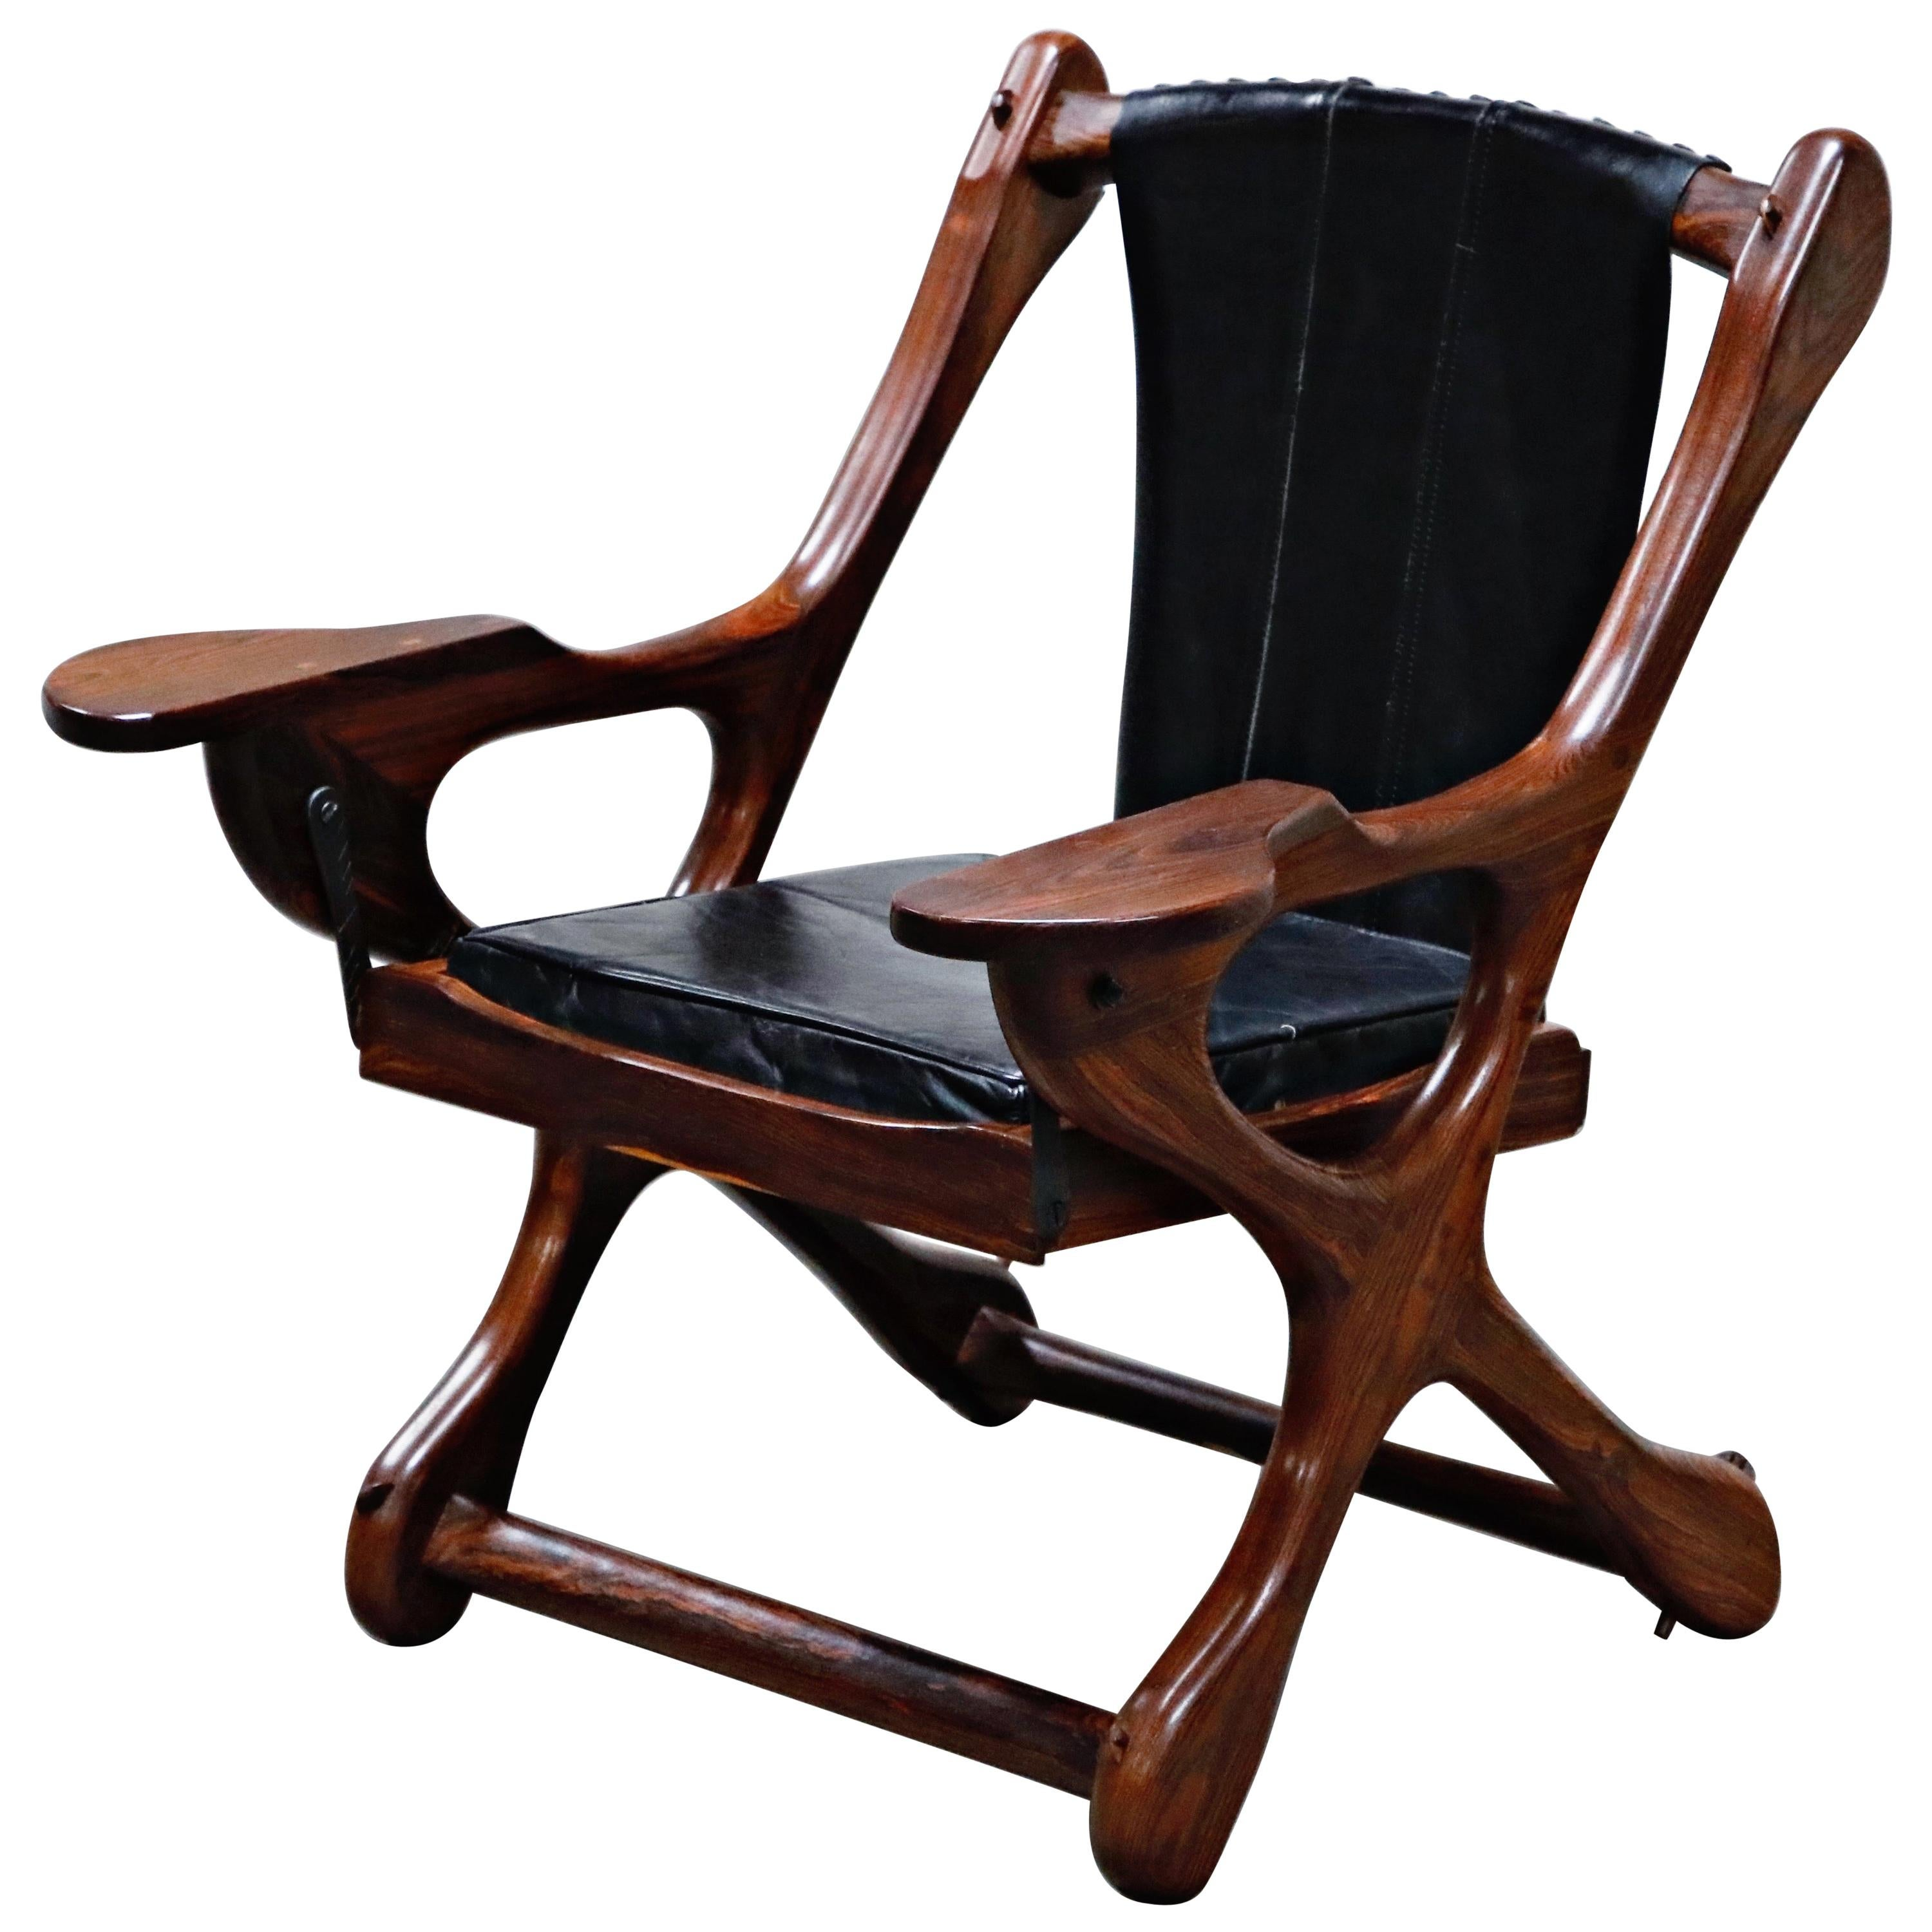 Don Shoemaker for Senal S.A. Cocobolo Rosewood 'Swinger' Rocking Chair, Signed